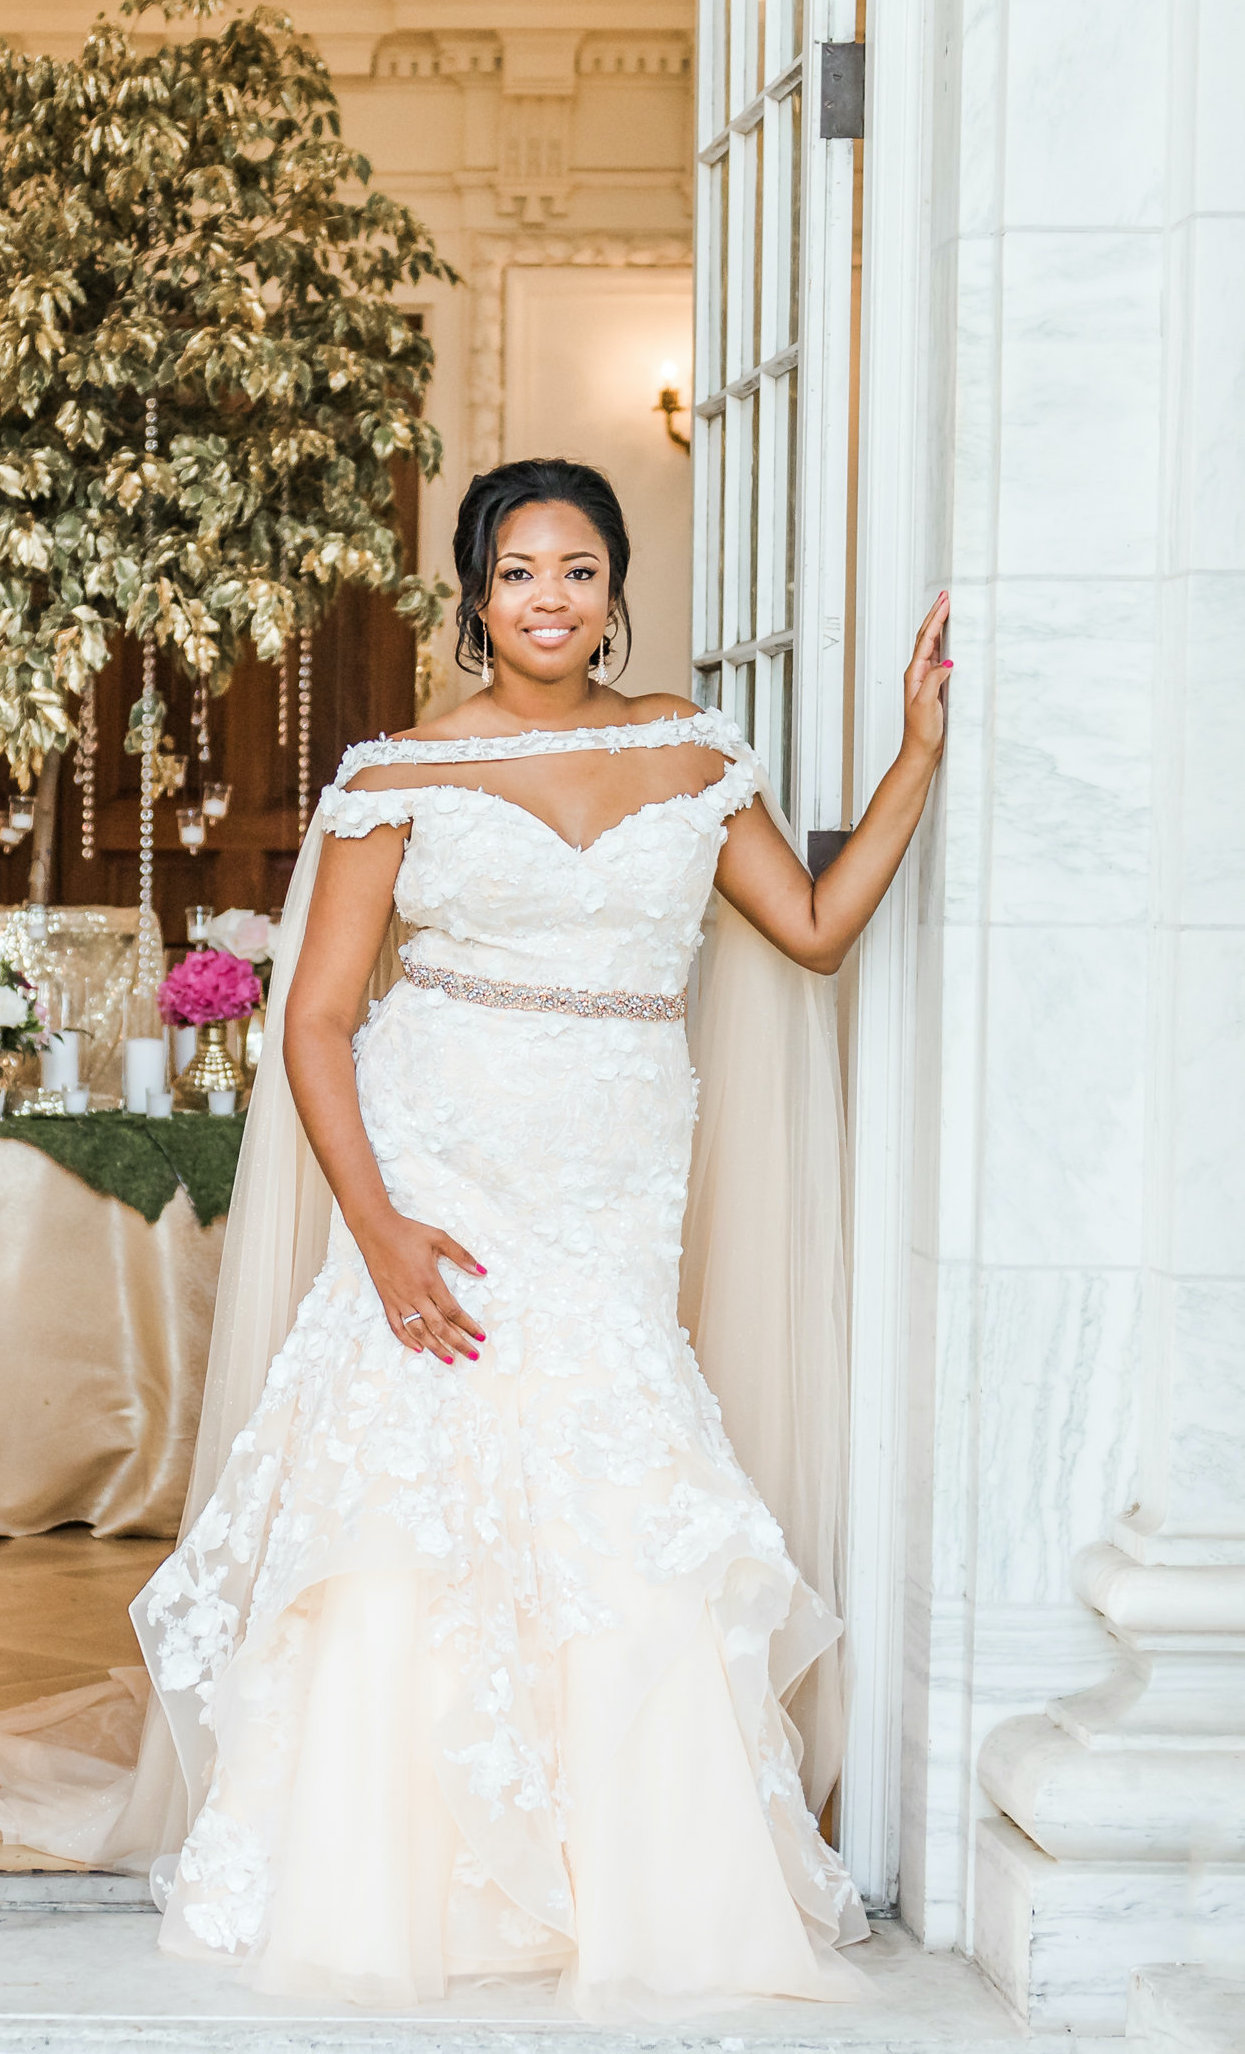 Anomalie Online Custom Wedding Dresses can create your glam dream dress with tiers, ruffles, off-the-shoulder straps, and lace.